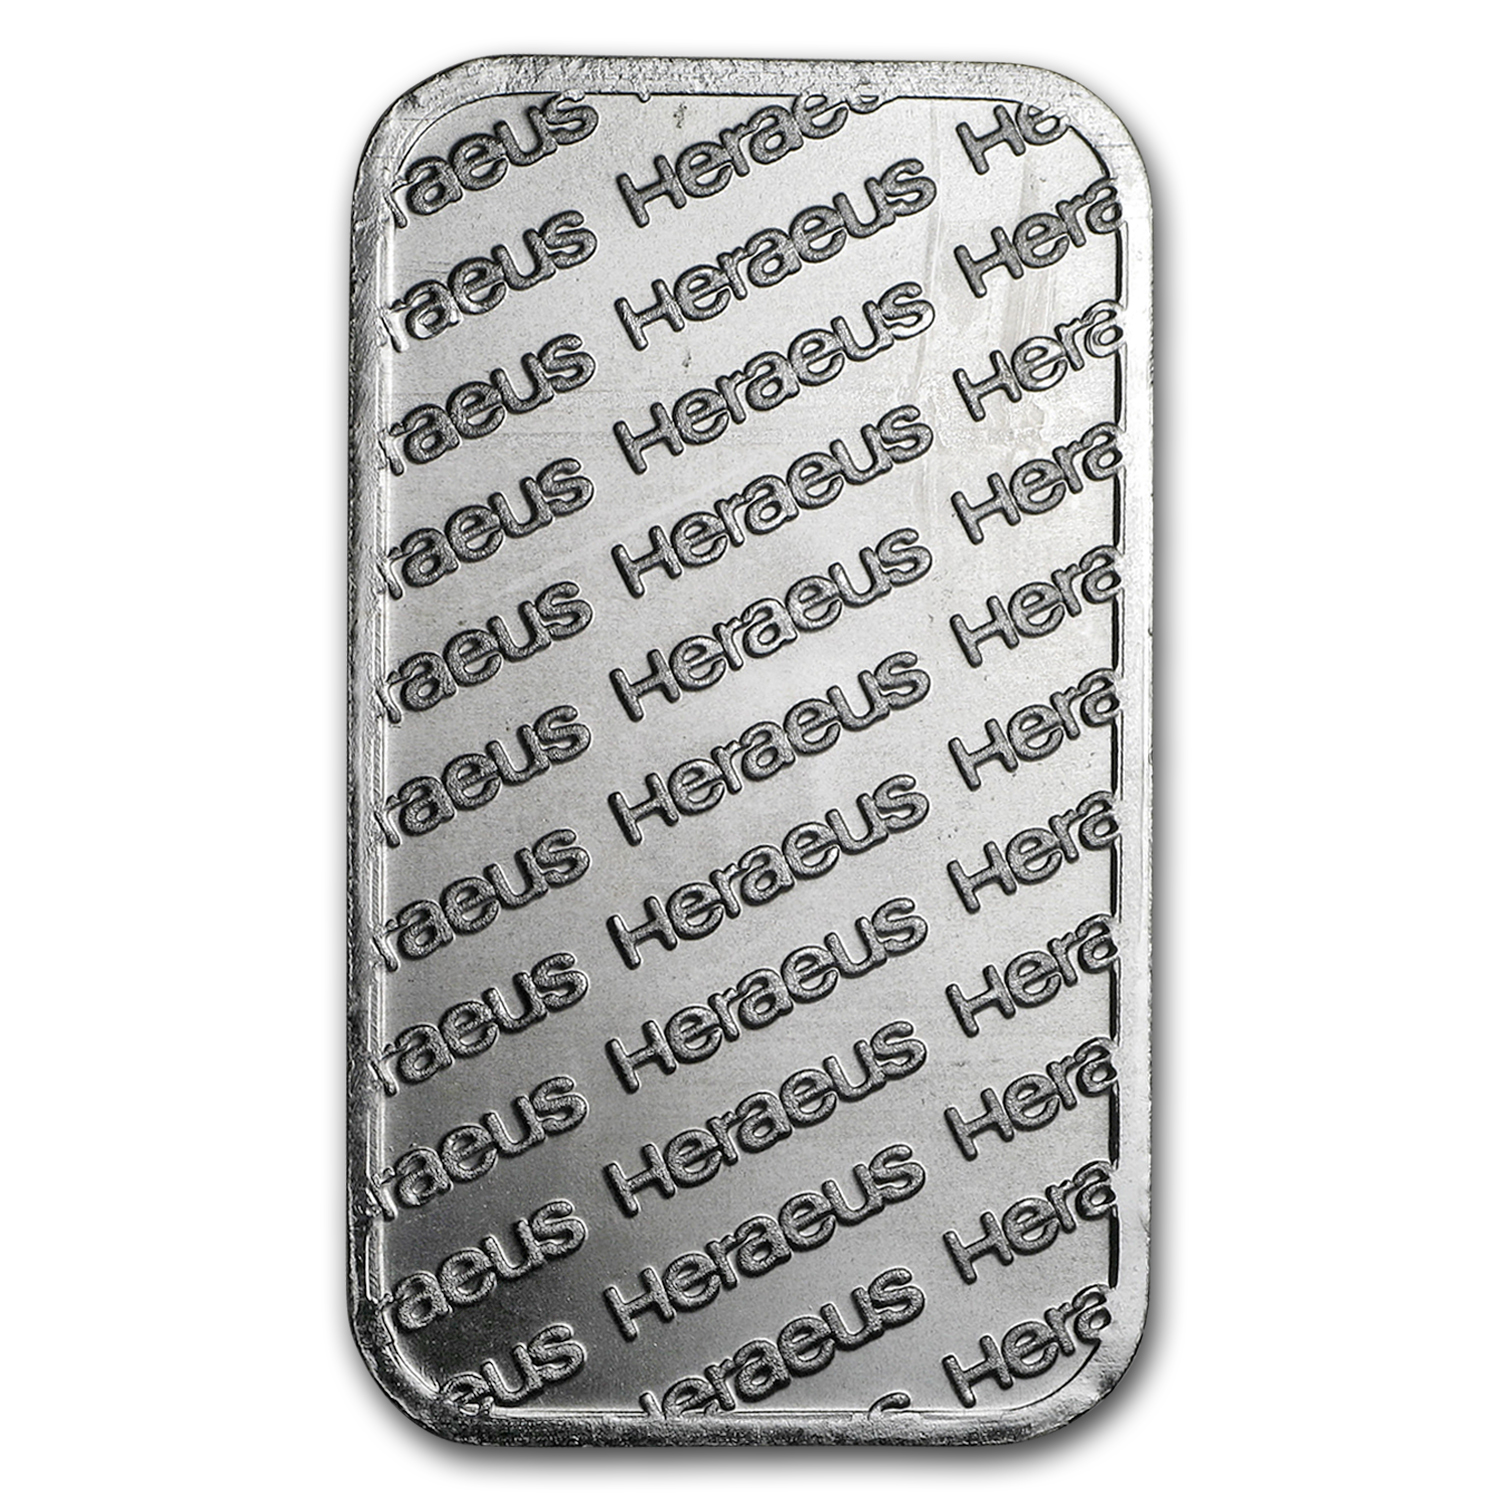 1 oz Silver Bar - Heraeus (Secondary Market)